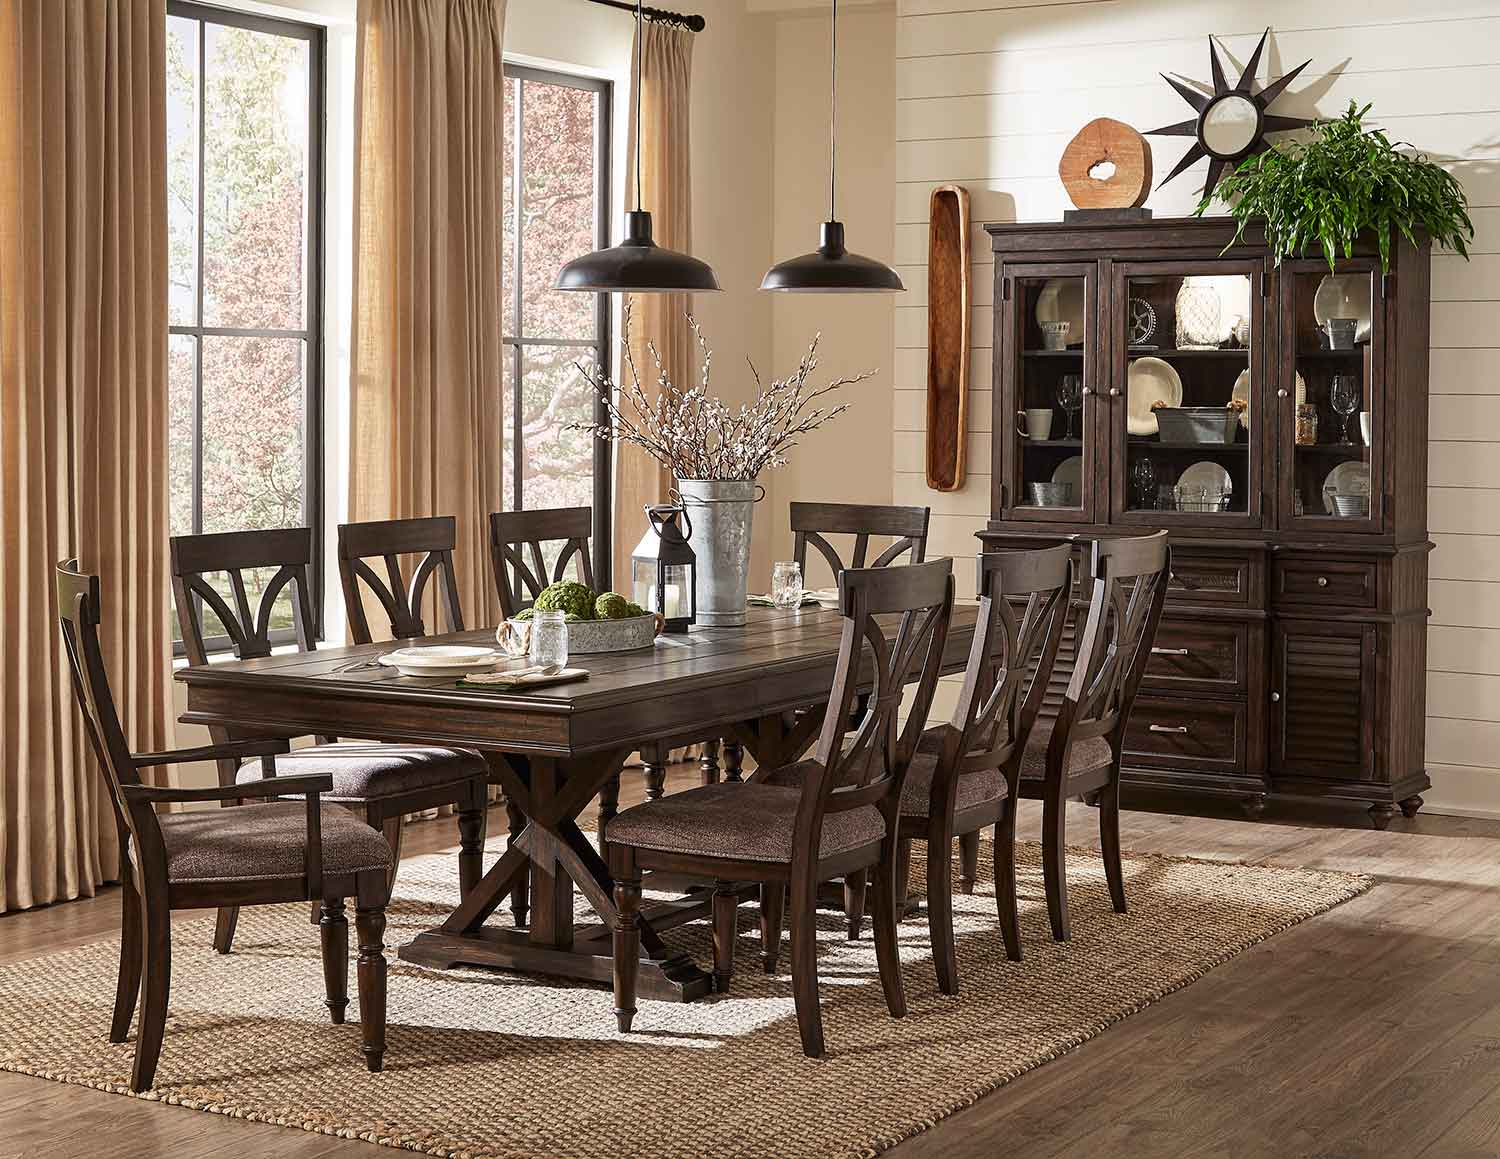 Homelegance Cardano Dining Set - Driftwood Charcoal